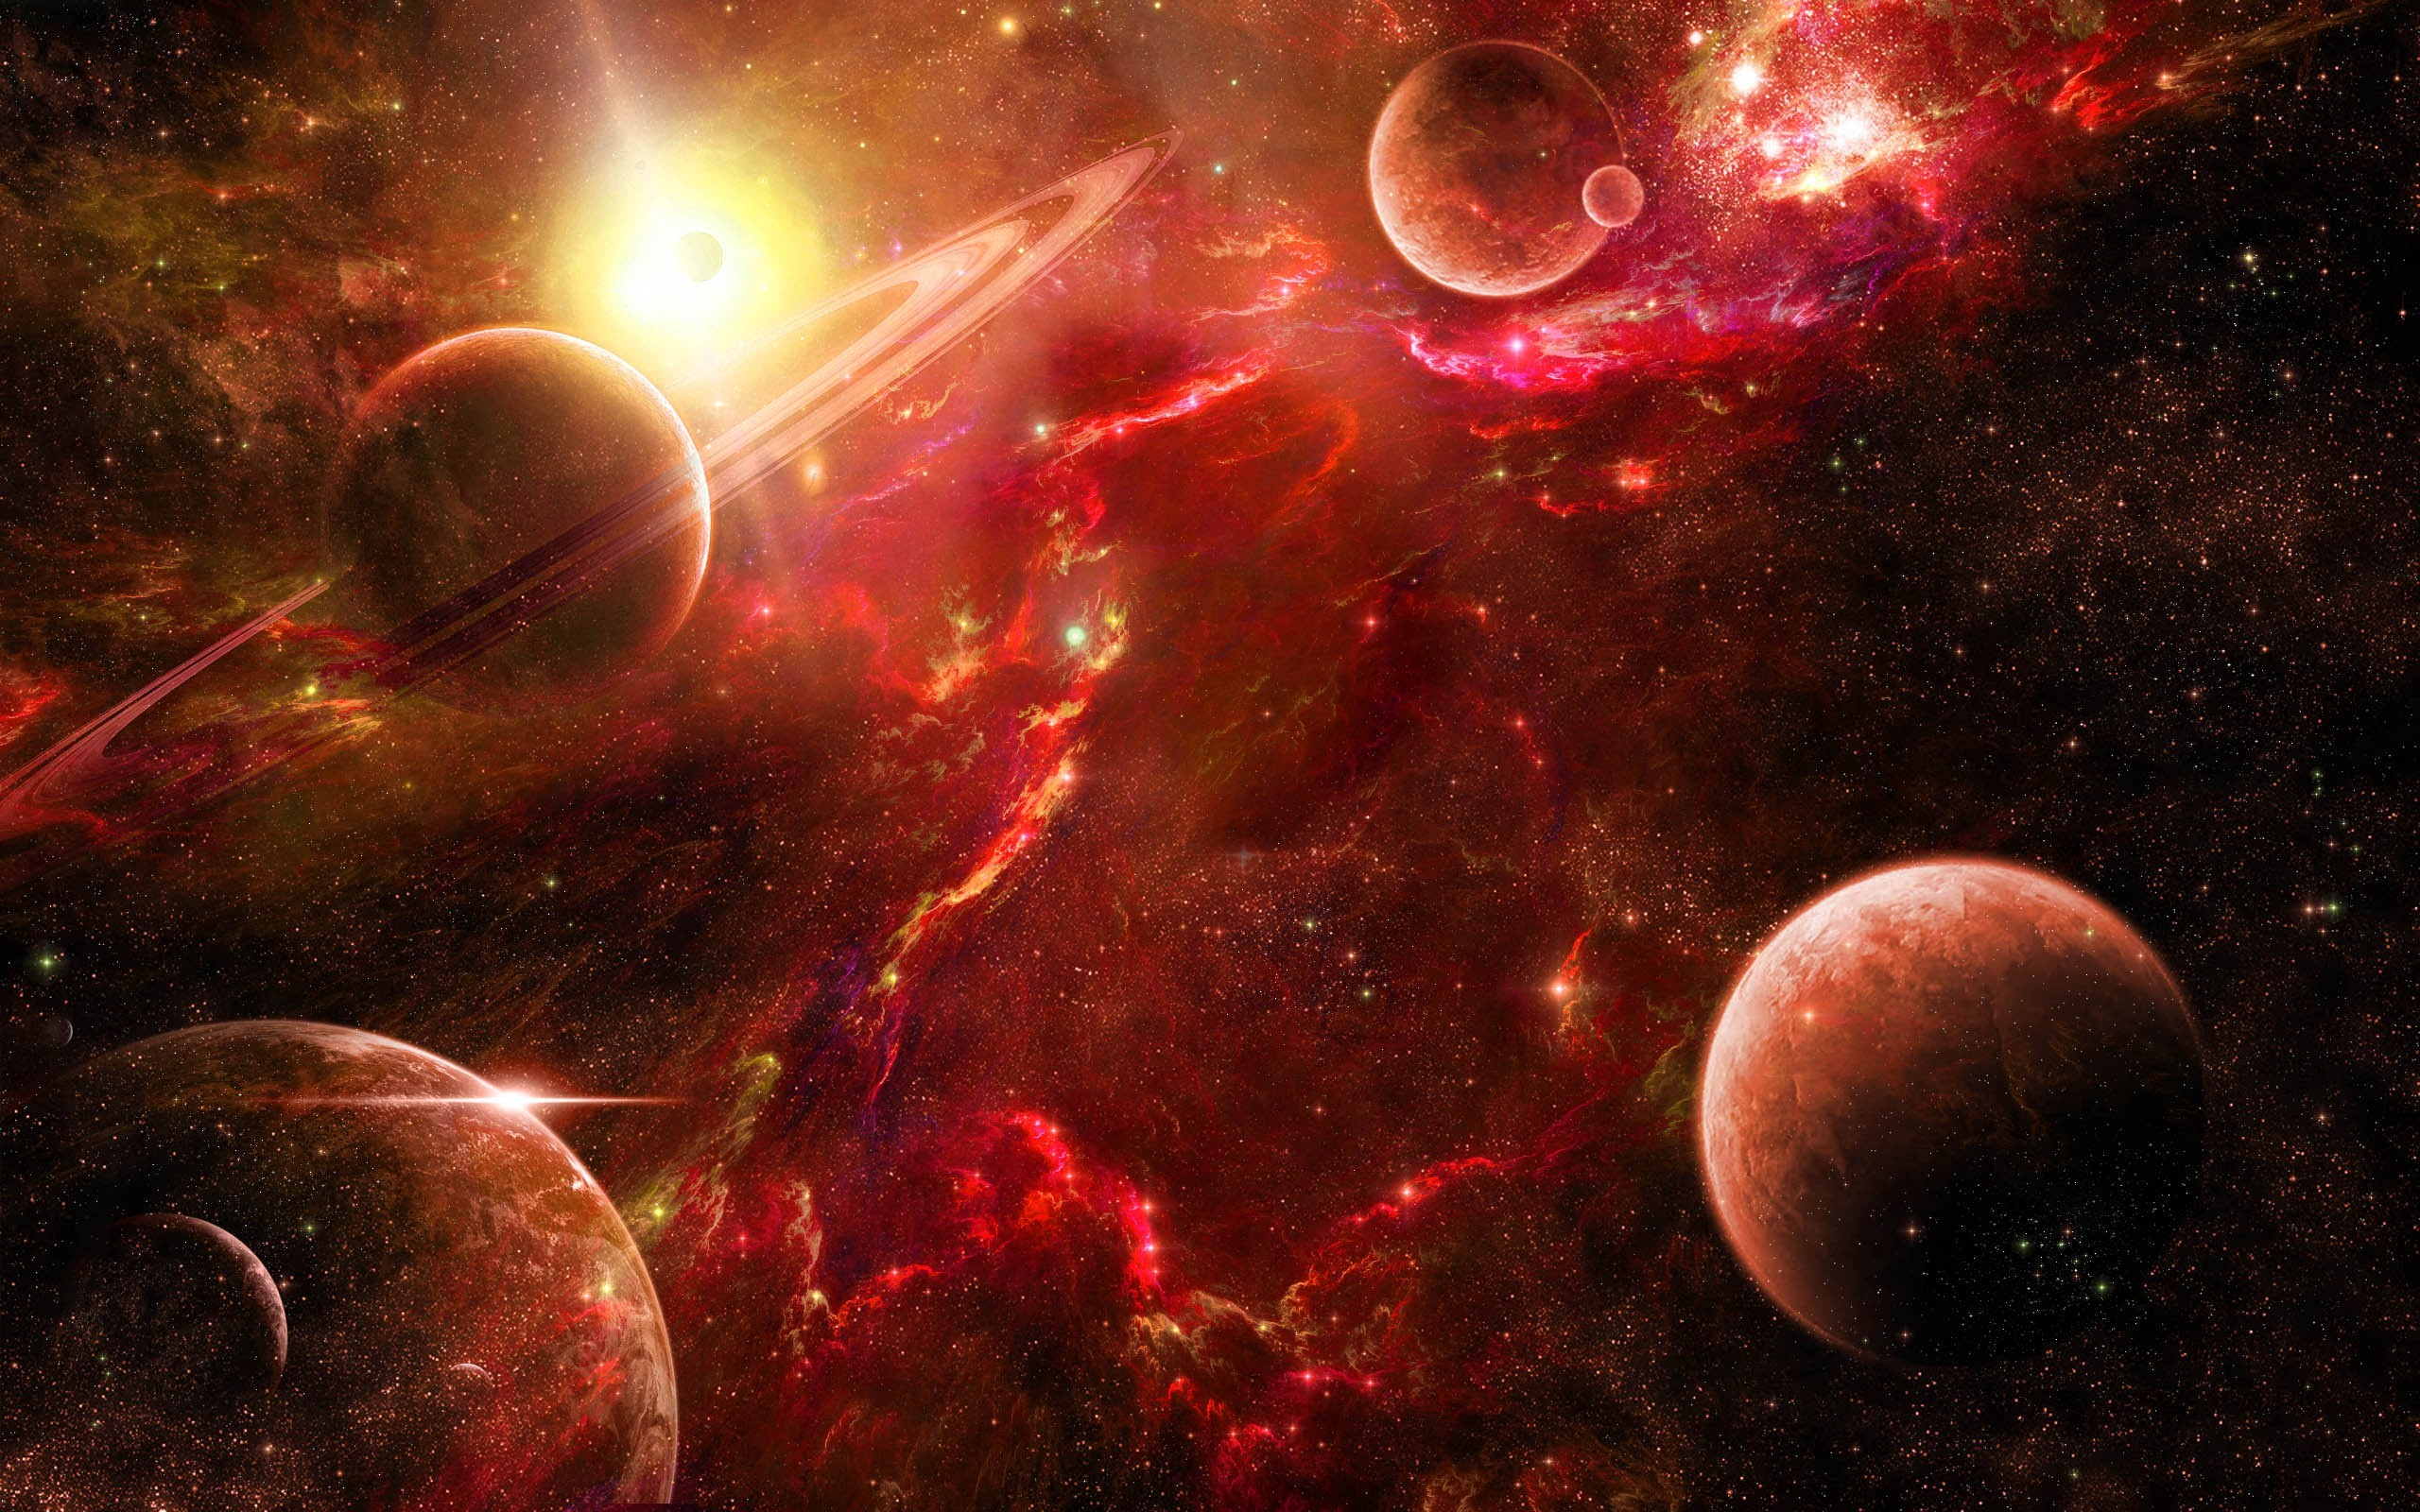 Outer space wallpaper download free stunning full hd for Space and outer space